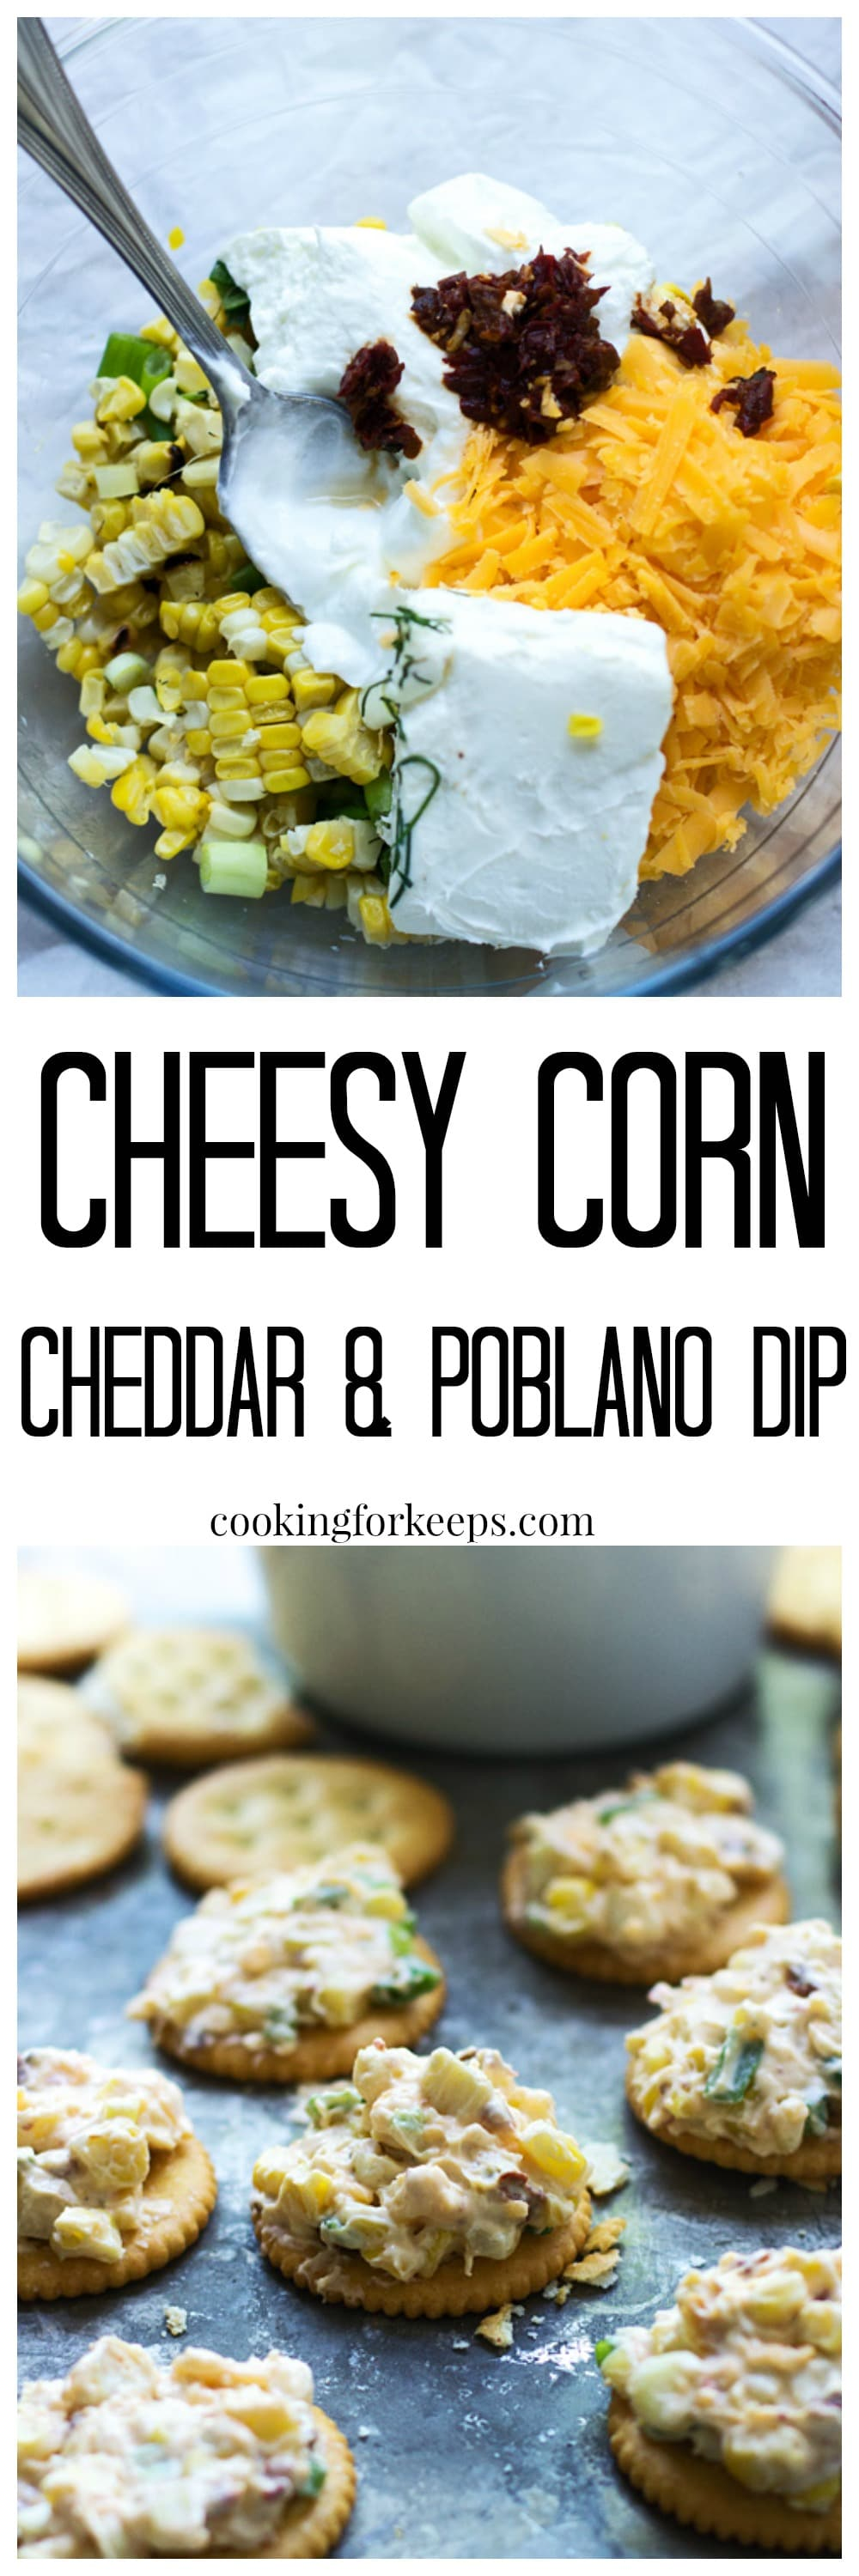 Cheesy Corn, Poblano and Cheddar Dip